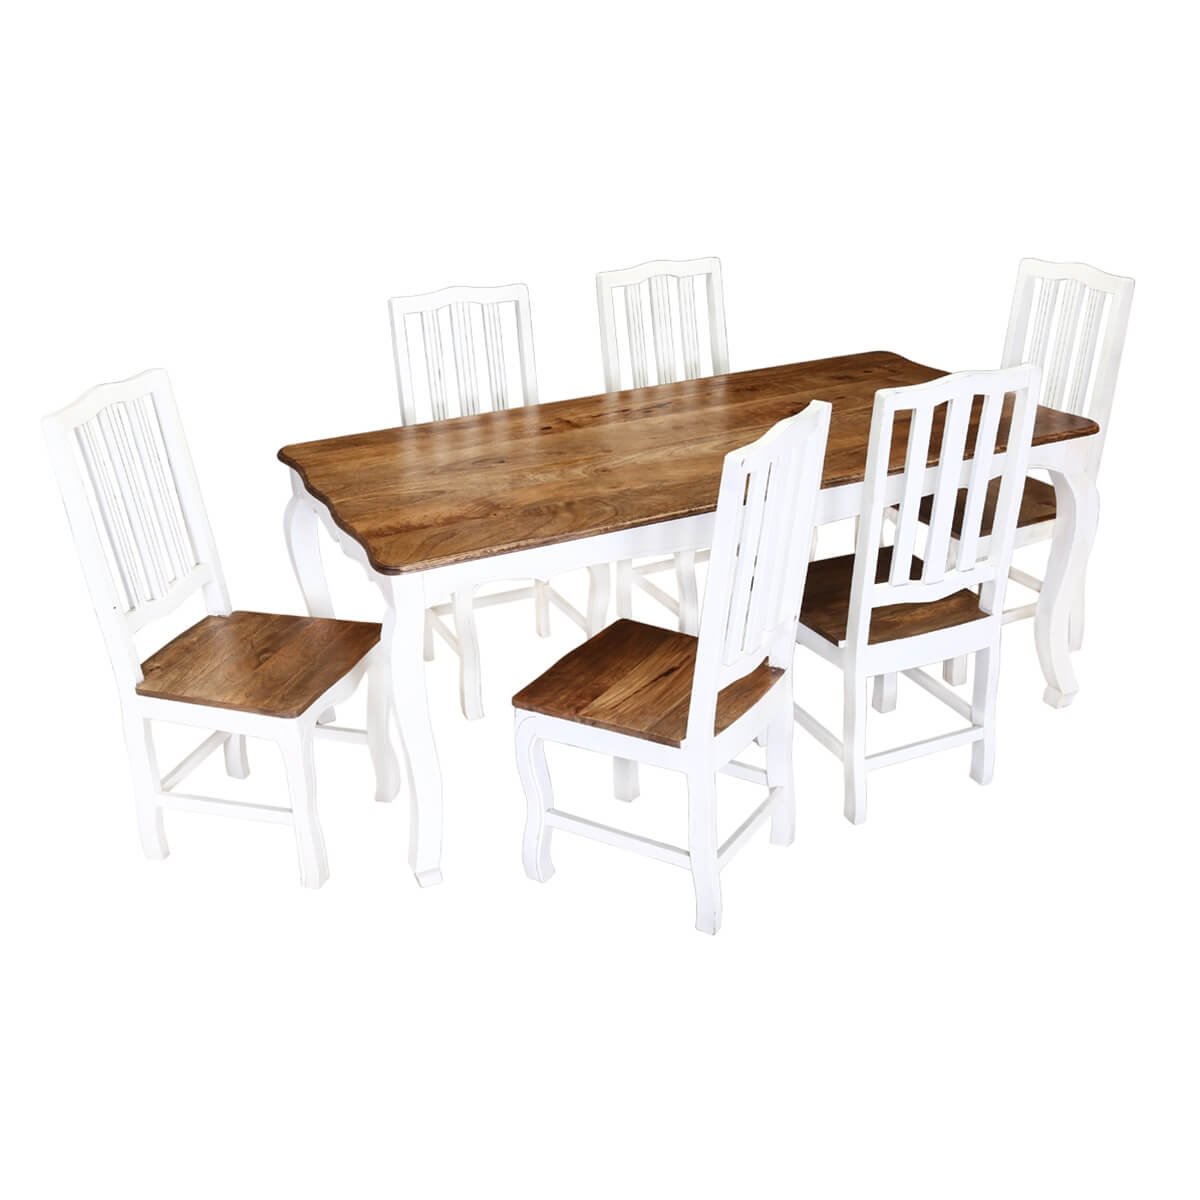 Rehoboth white and natural wood cabriole dining table with - Natural wood dining chairs ...